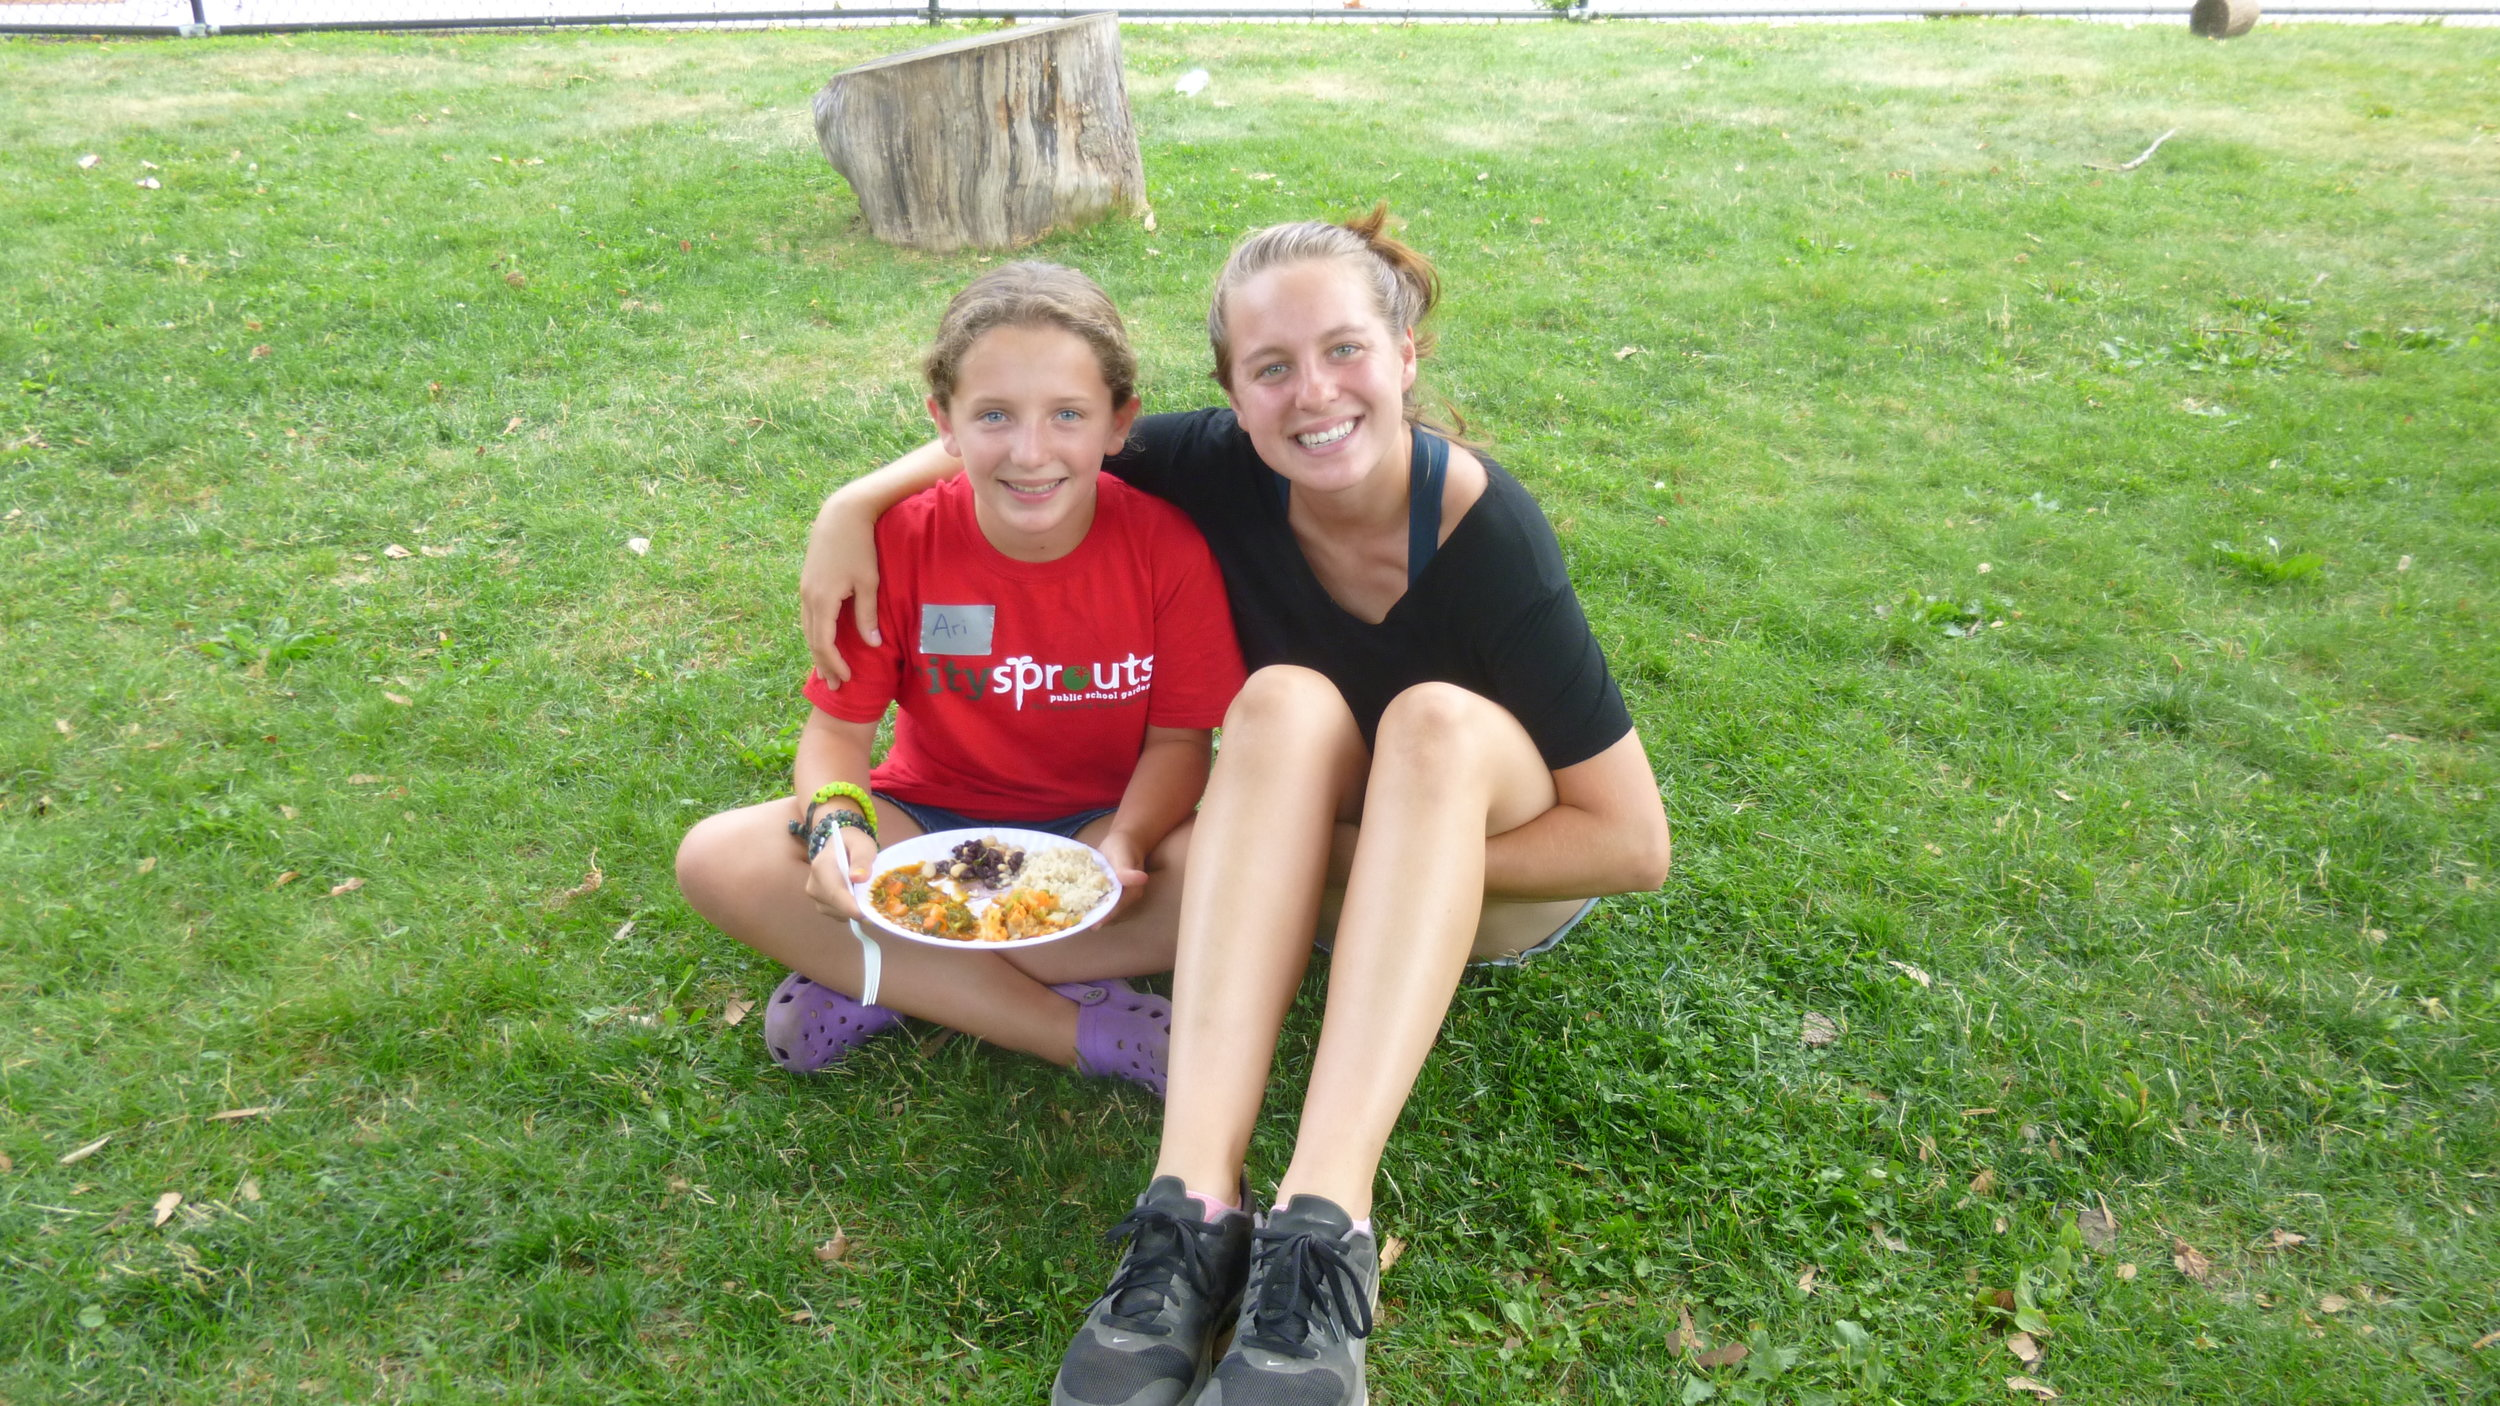 Morse School intern Ari shares a delicious meal with college fellow Alyssa.